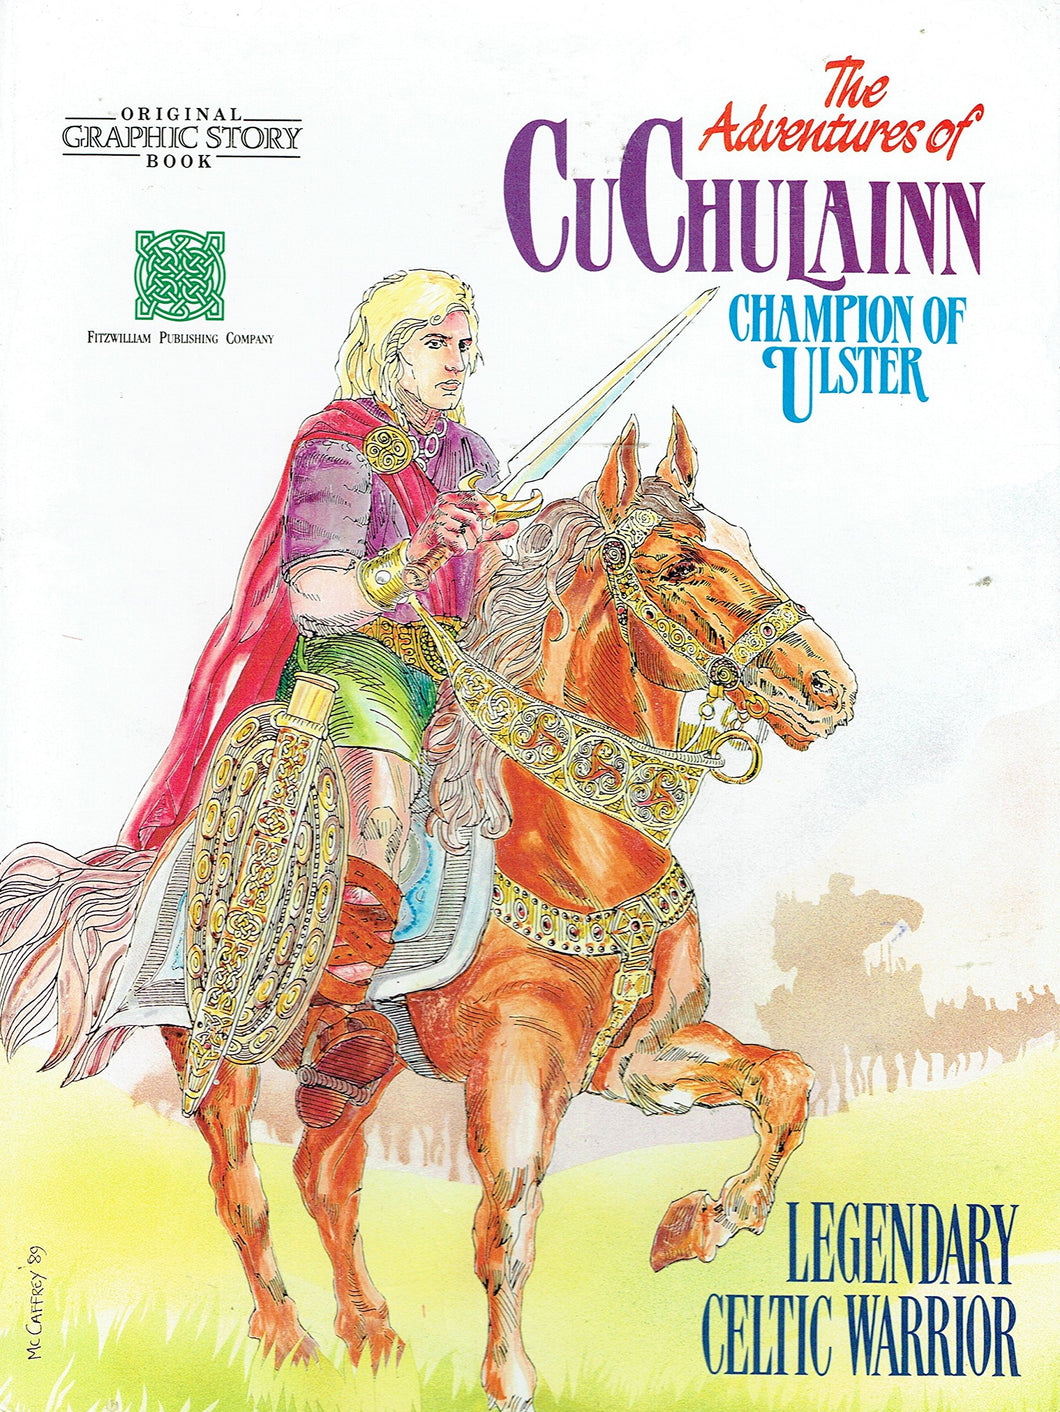 Adventures of Cuchulain, Champion of Ulster (Original graphic story book)